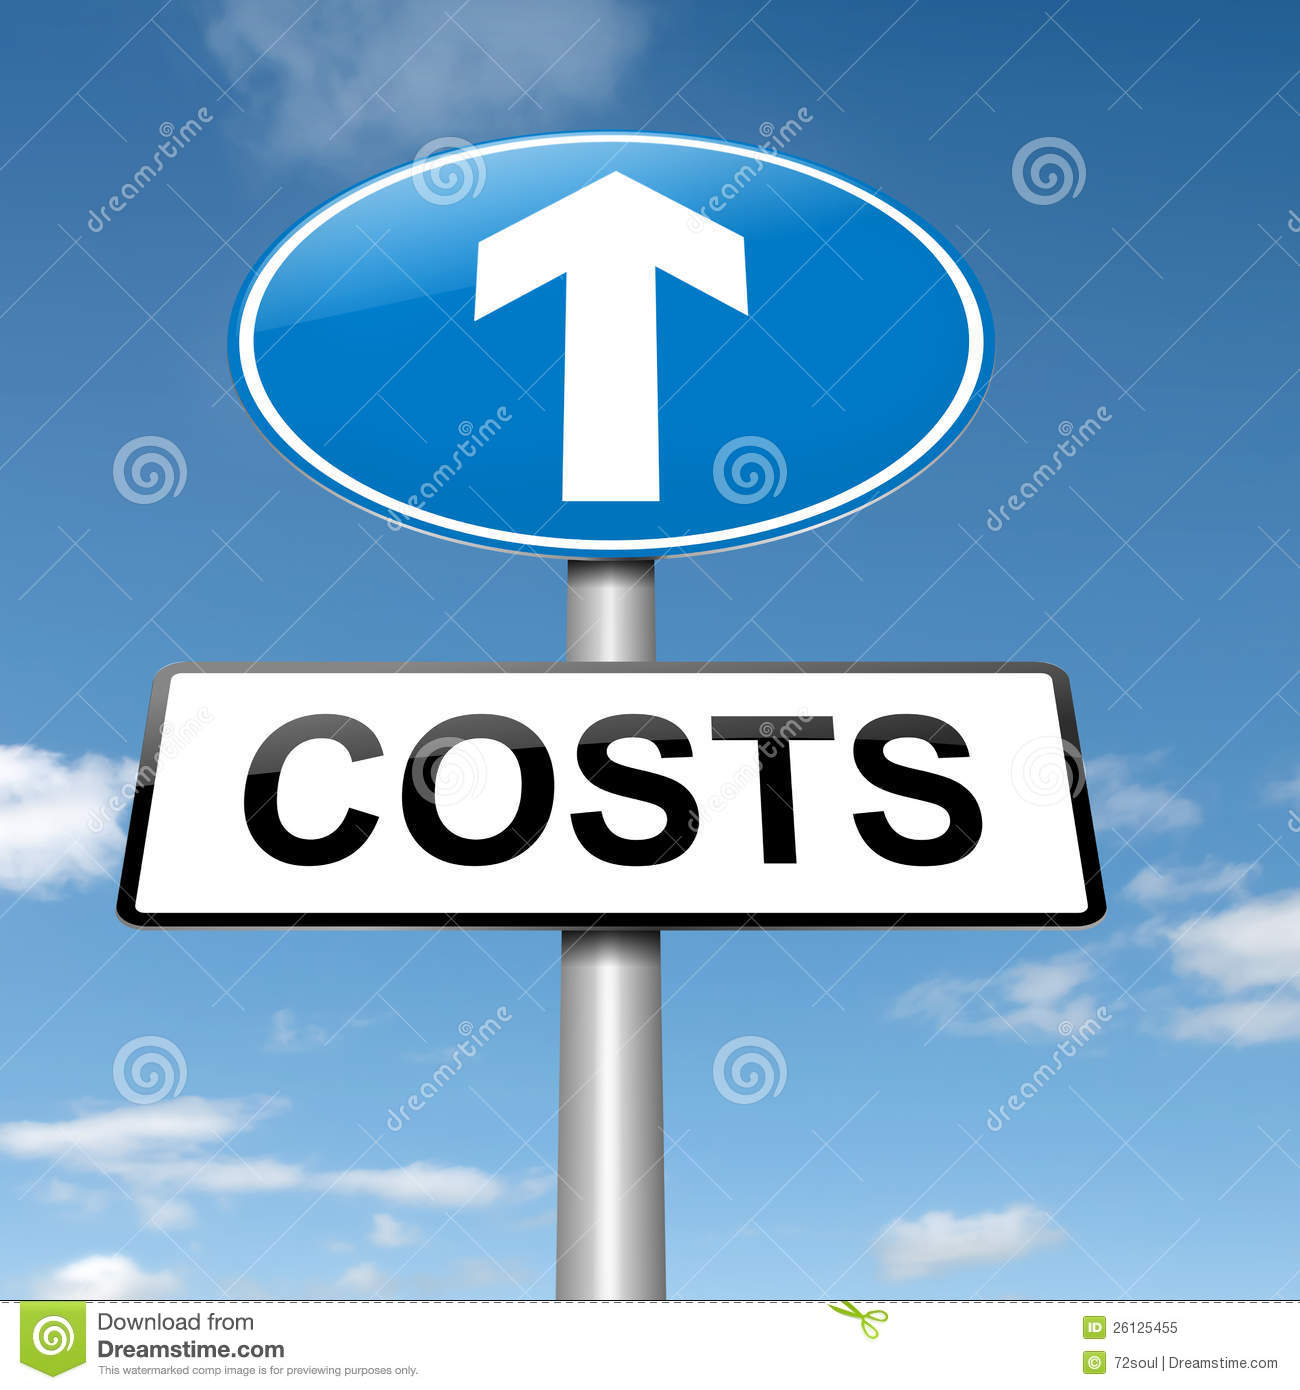 costs and maximum price increase The government or an industry regulator can set a maximum price to prevent the   be when shortage of foodstuffs threatens large rises in the free market price.